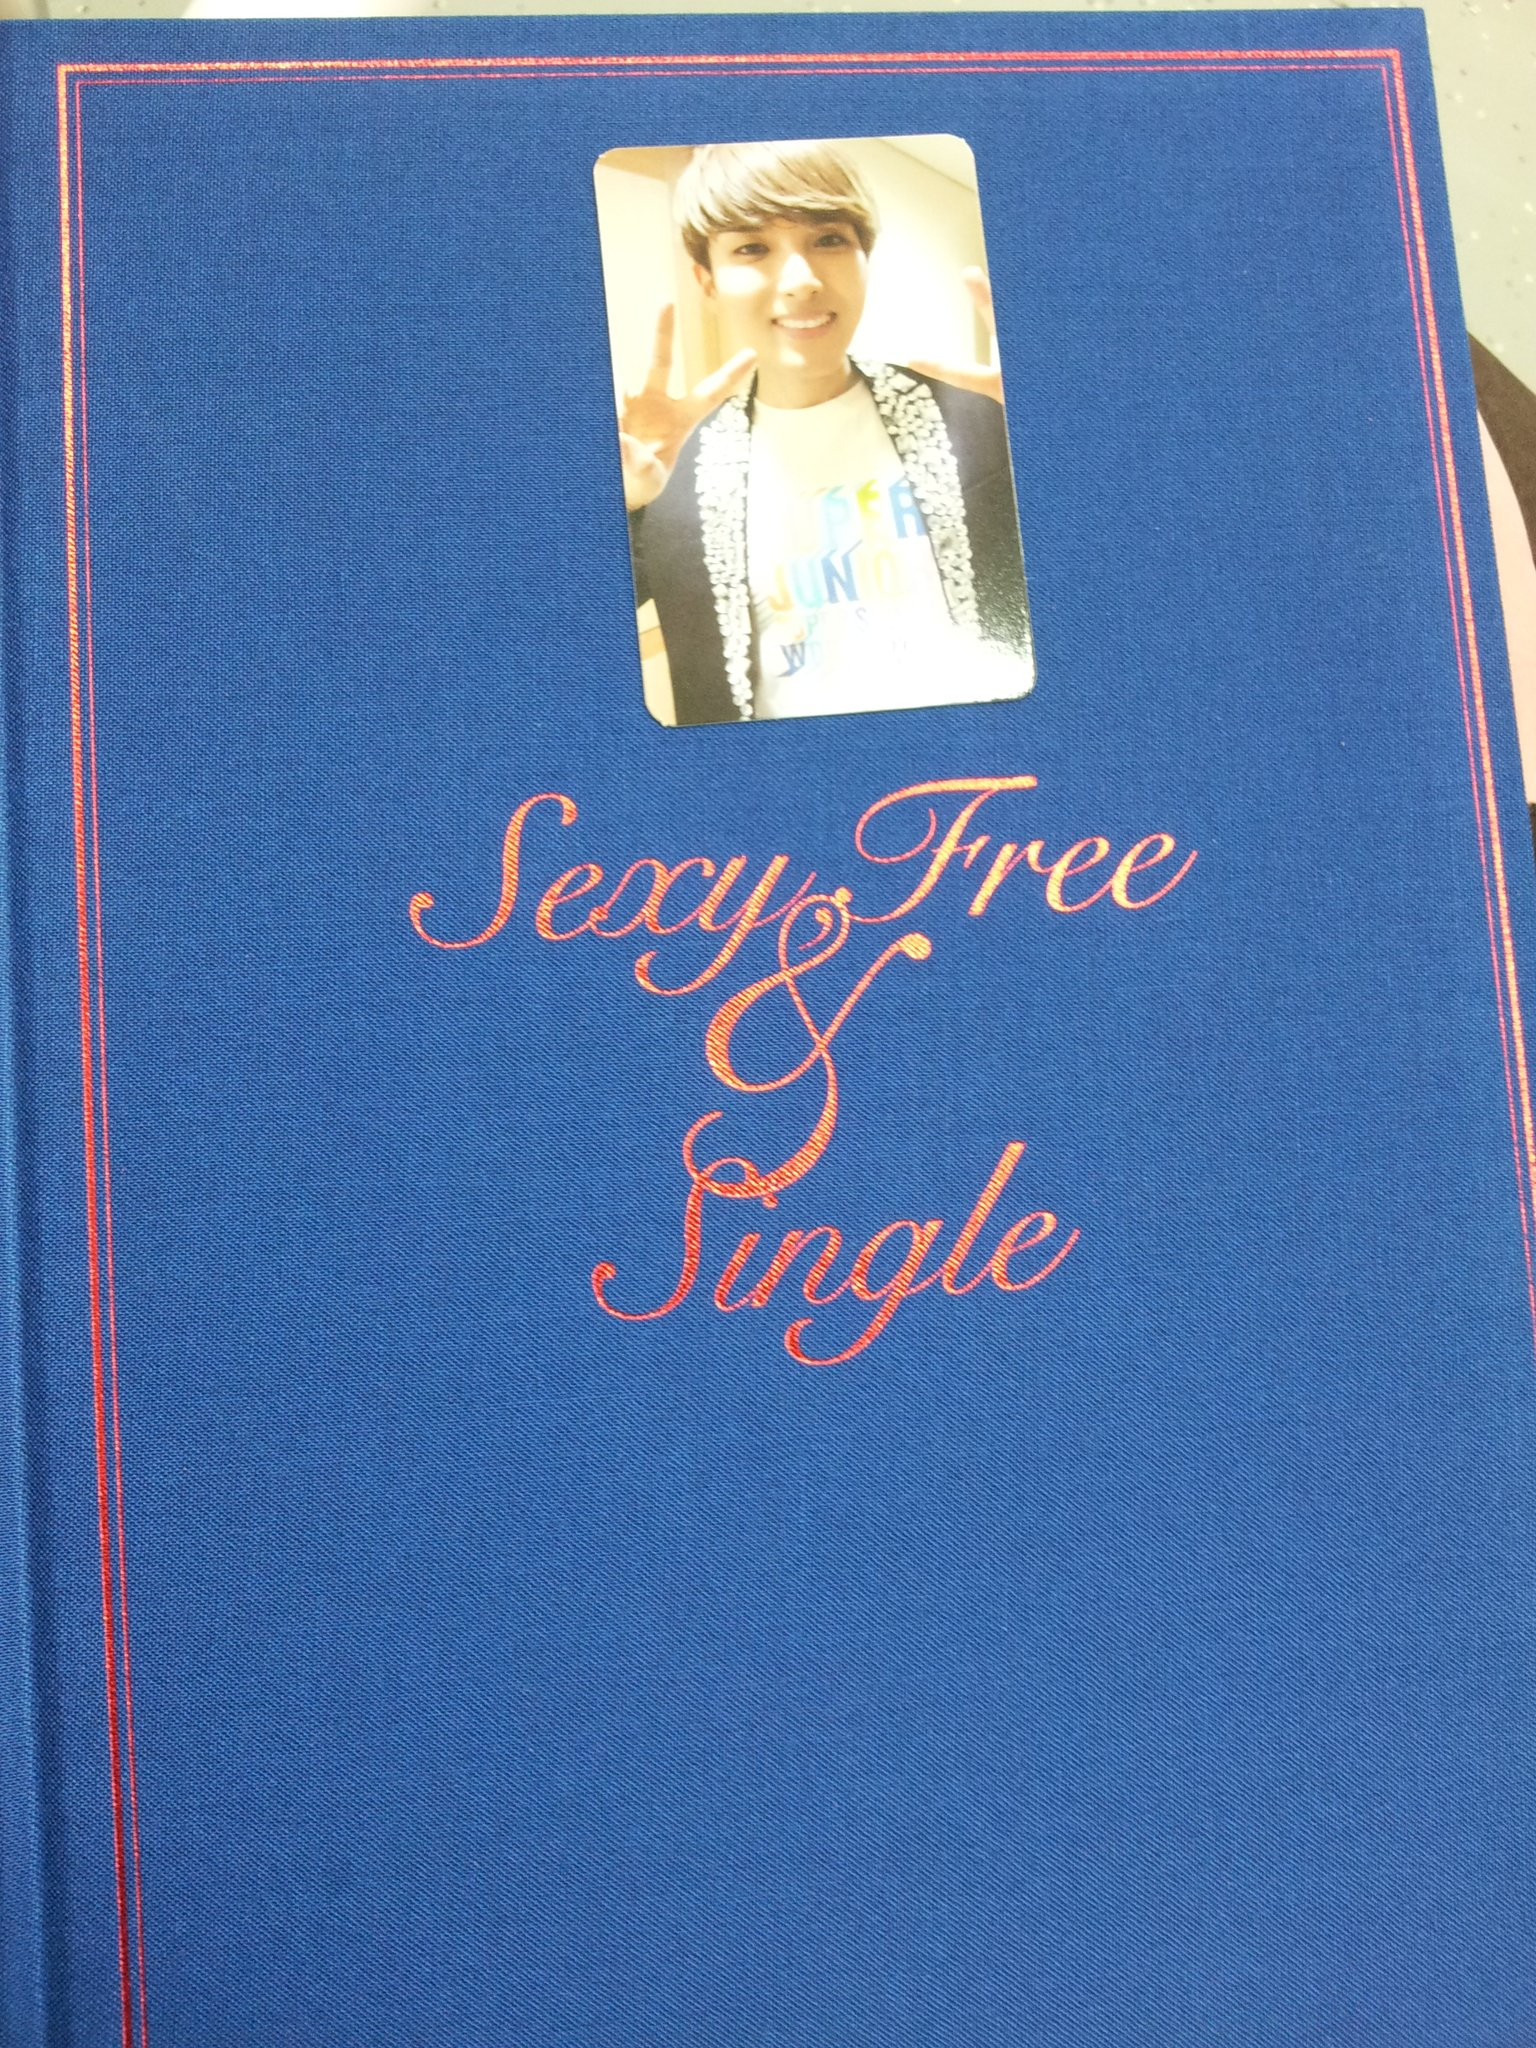 RT @EverLastingFans: [PIC] 'Sexy, Free & Single' Ryeowook Photocard! http://t.co/UrCw2aNt cr: 712jay